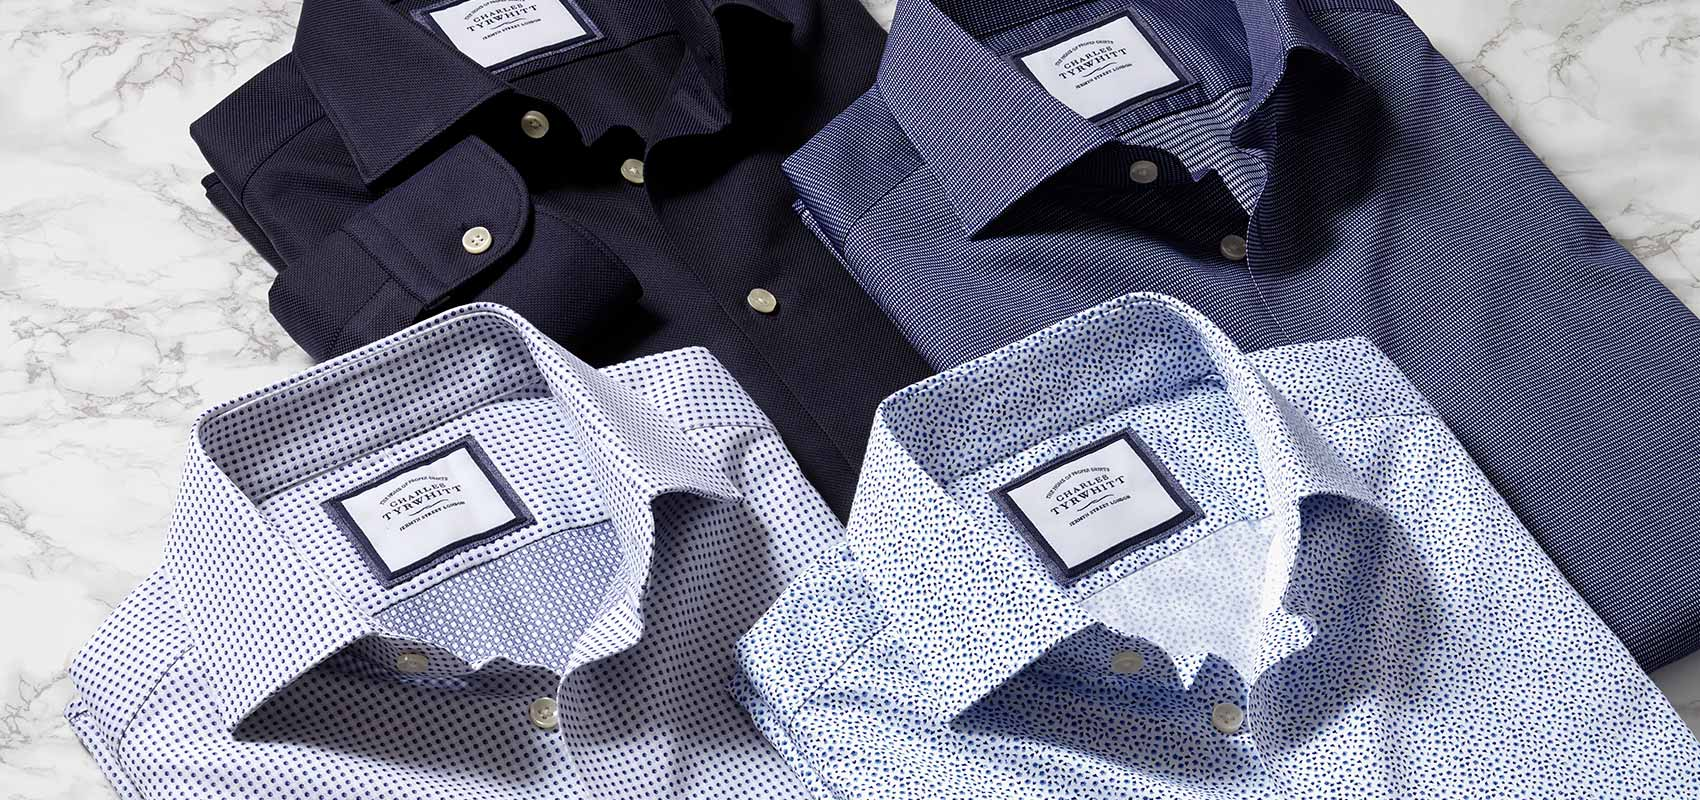 Business casual printed shirts